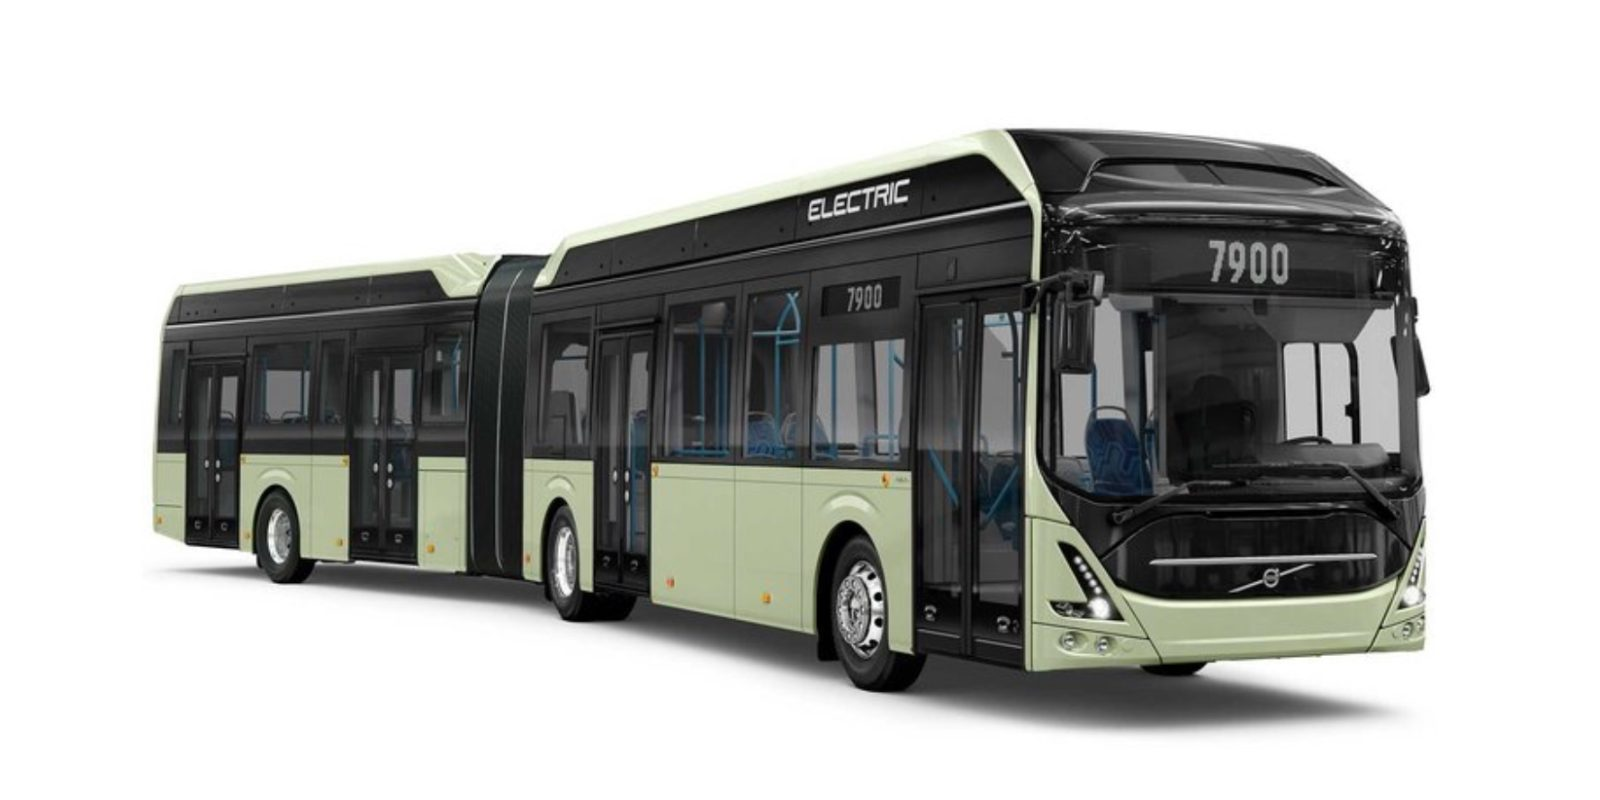 Volvo introduces new all-electric articulated bus for up to 150 passengers